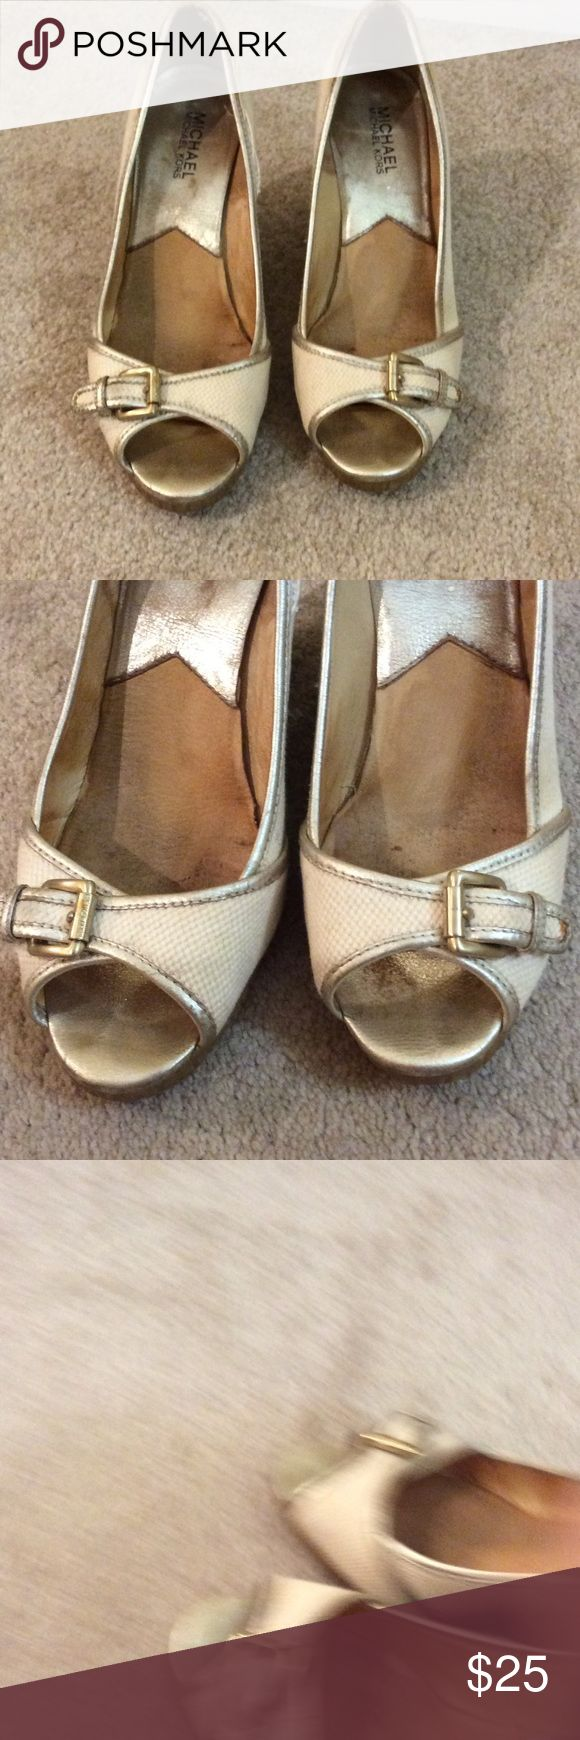 Gold , Silver and Cream Wedges These show wear, there is some fraying around top seams and a spot on the one buckle tab, they still look good if you aren't looking real close. Price reflects wear. MICHAEL Michael Kors Shoes Wedges